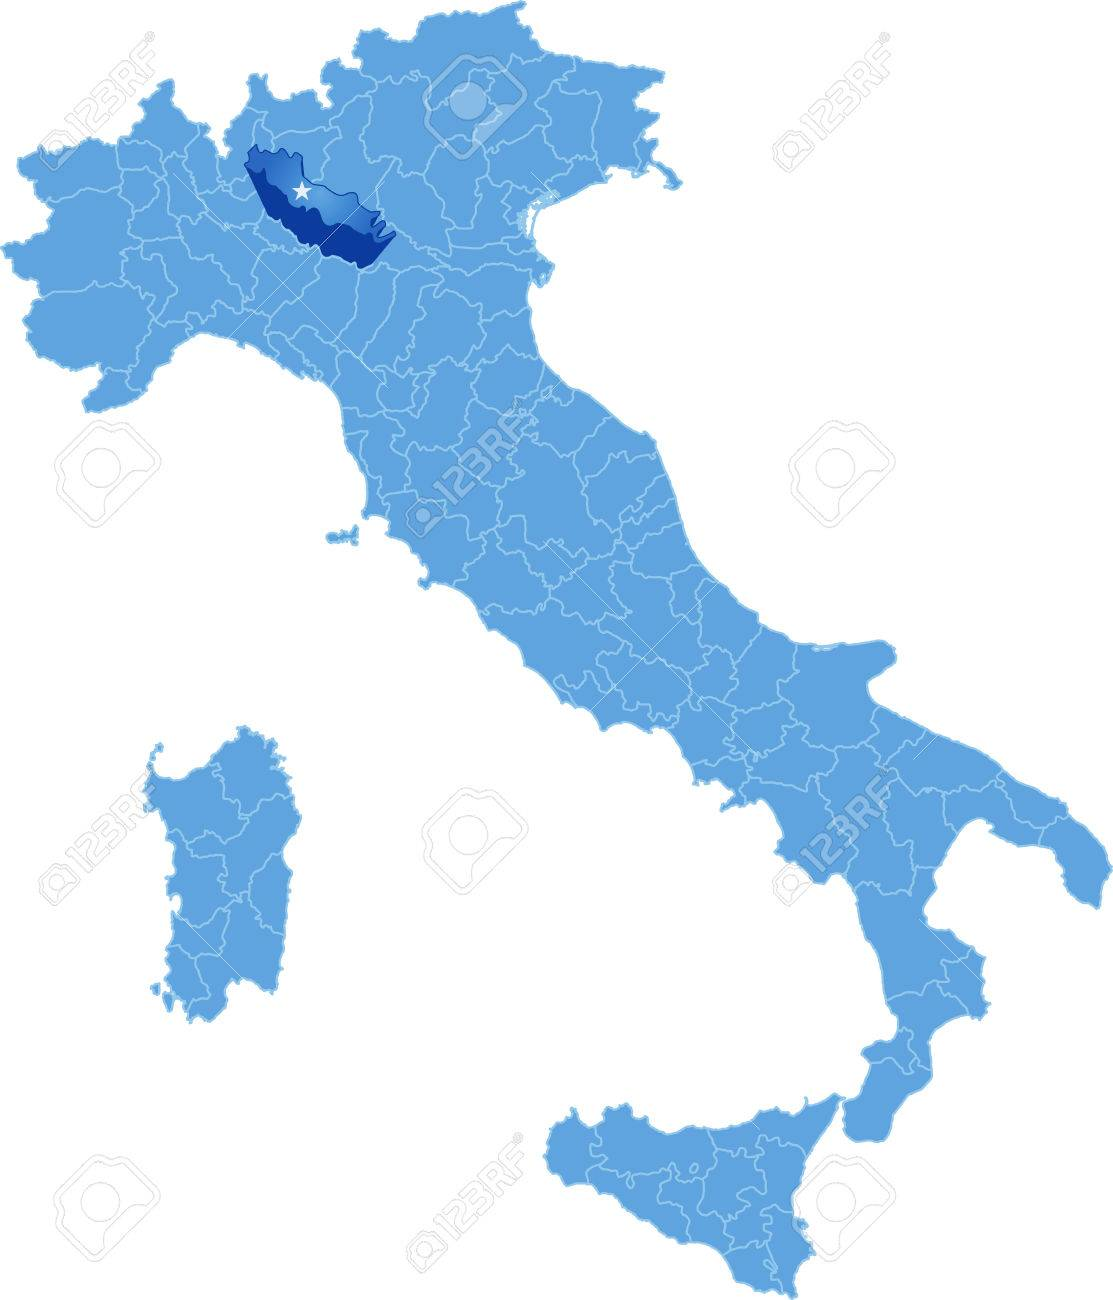 Map Of Italy Where Cremona Province Is Pulled Out Isolated On